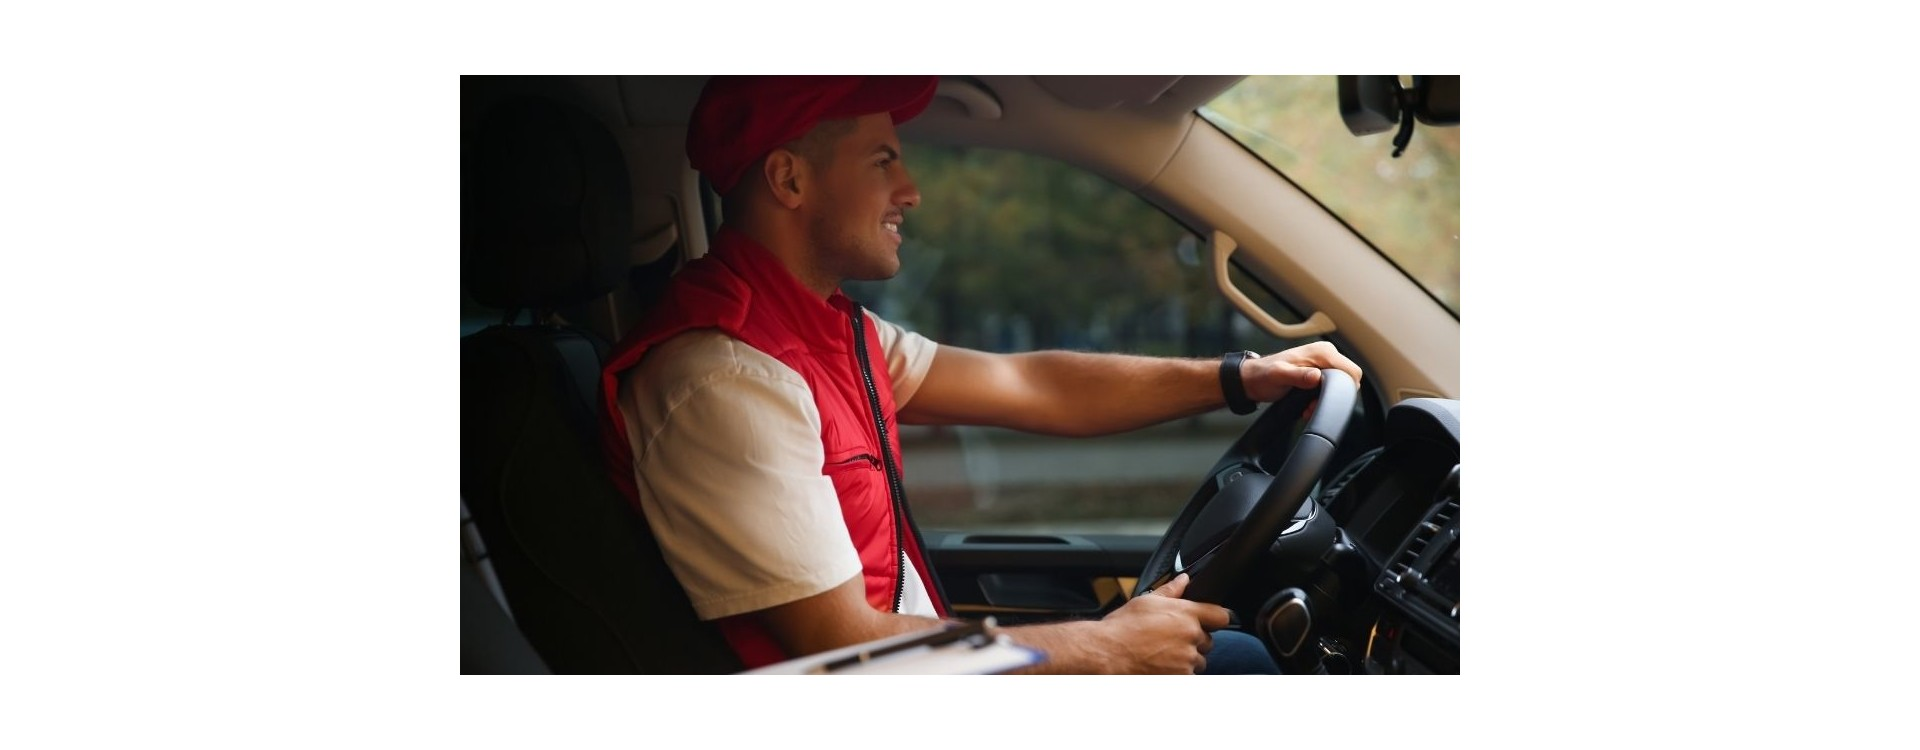 Health and Safety Tips for Commercial Van Drivers